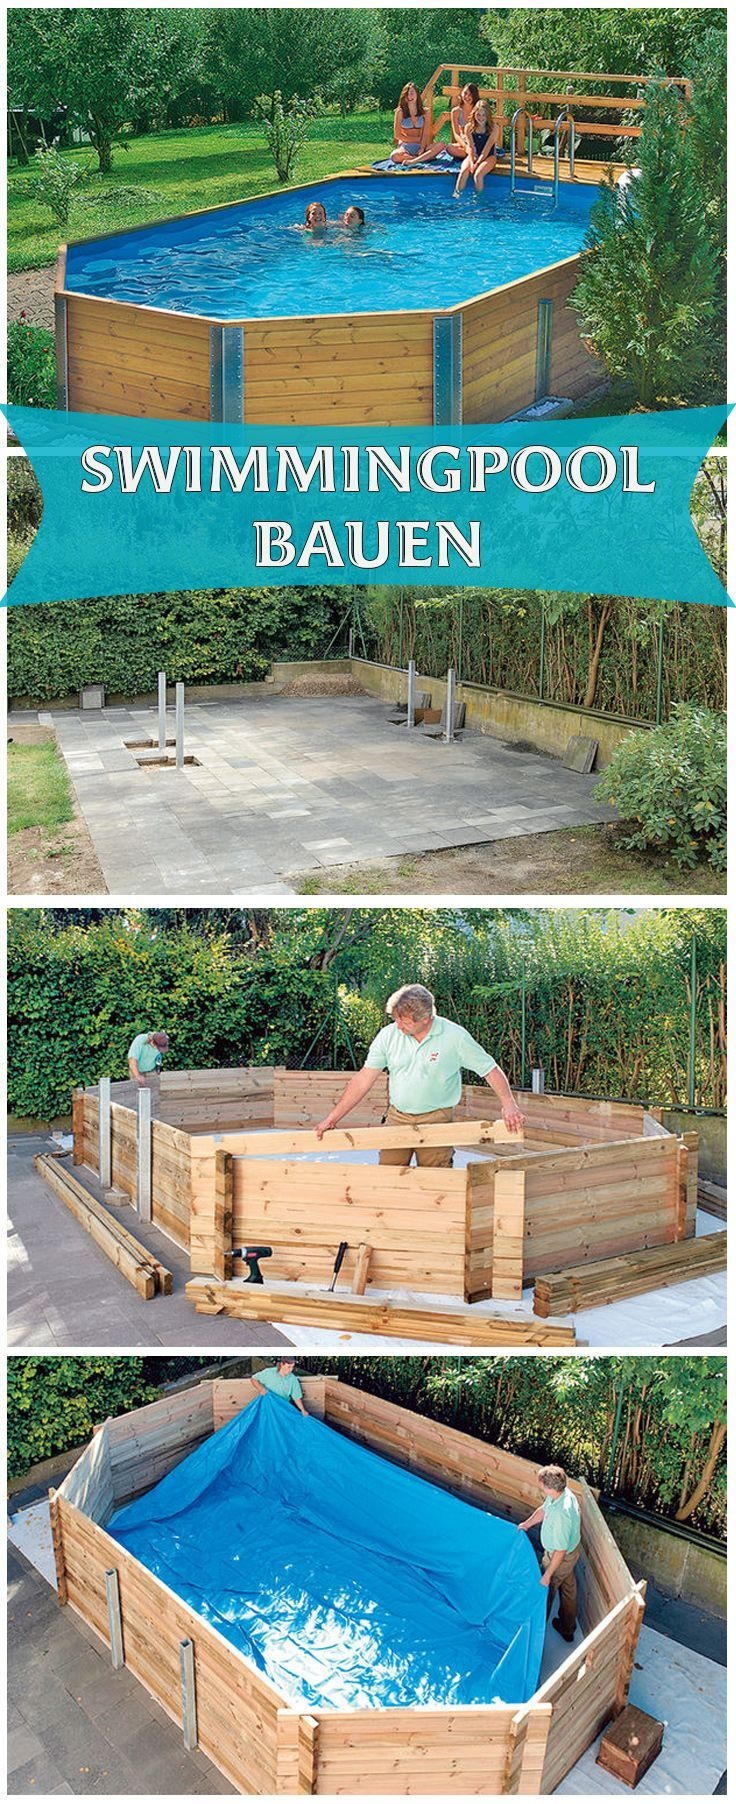 Pool Bauen Oder Nicht Bausatz Pool James Pinterest Backyard Swimming Pools And Yards